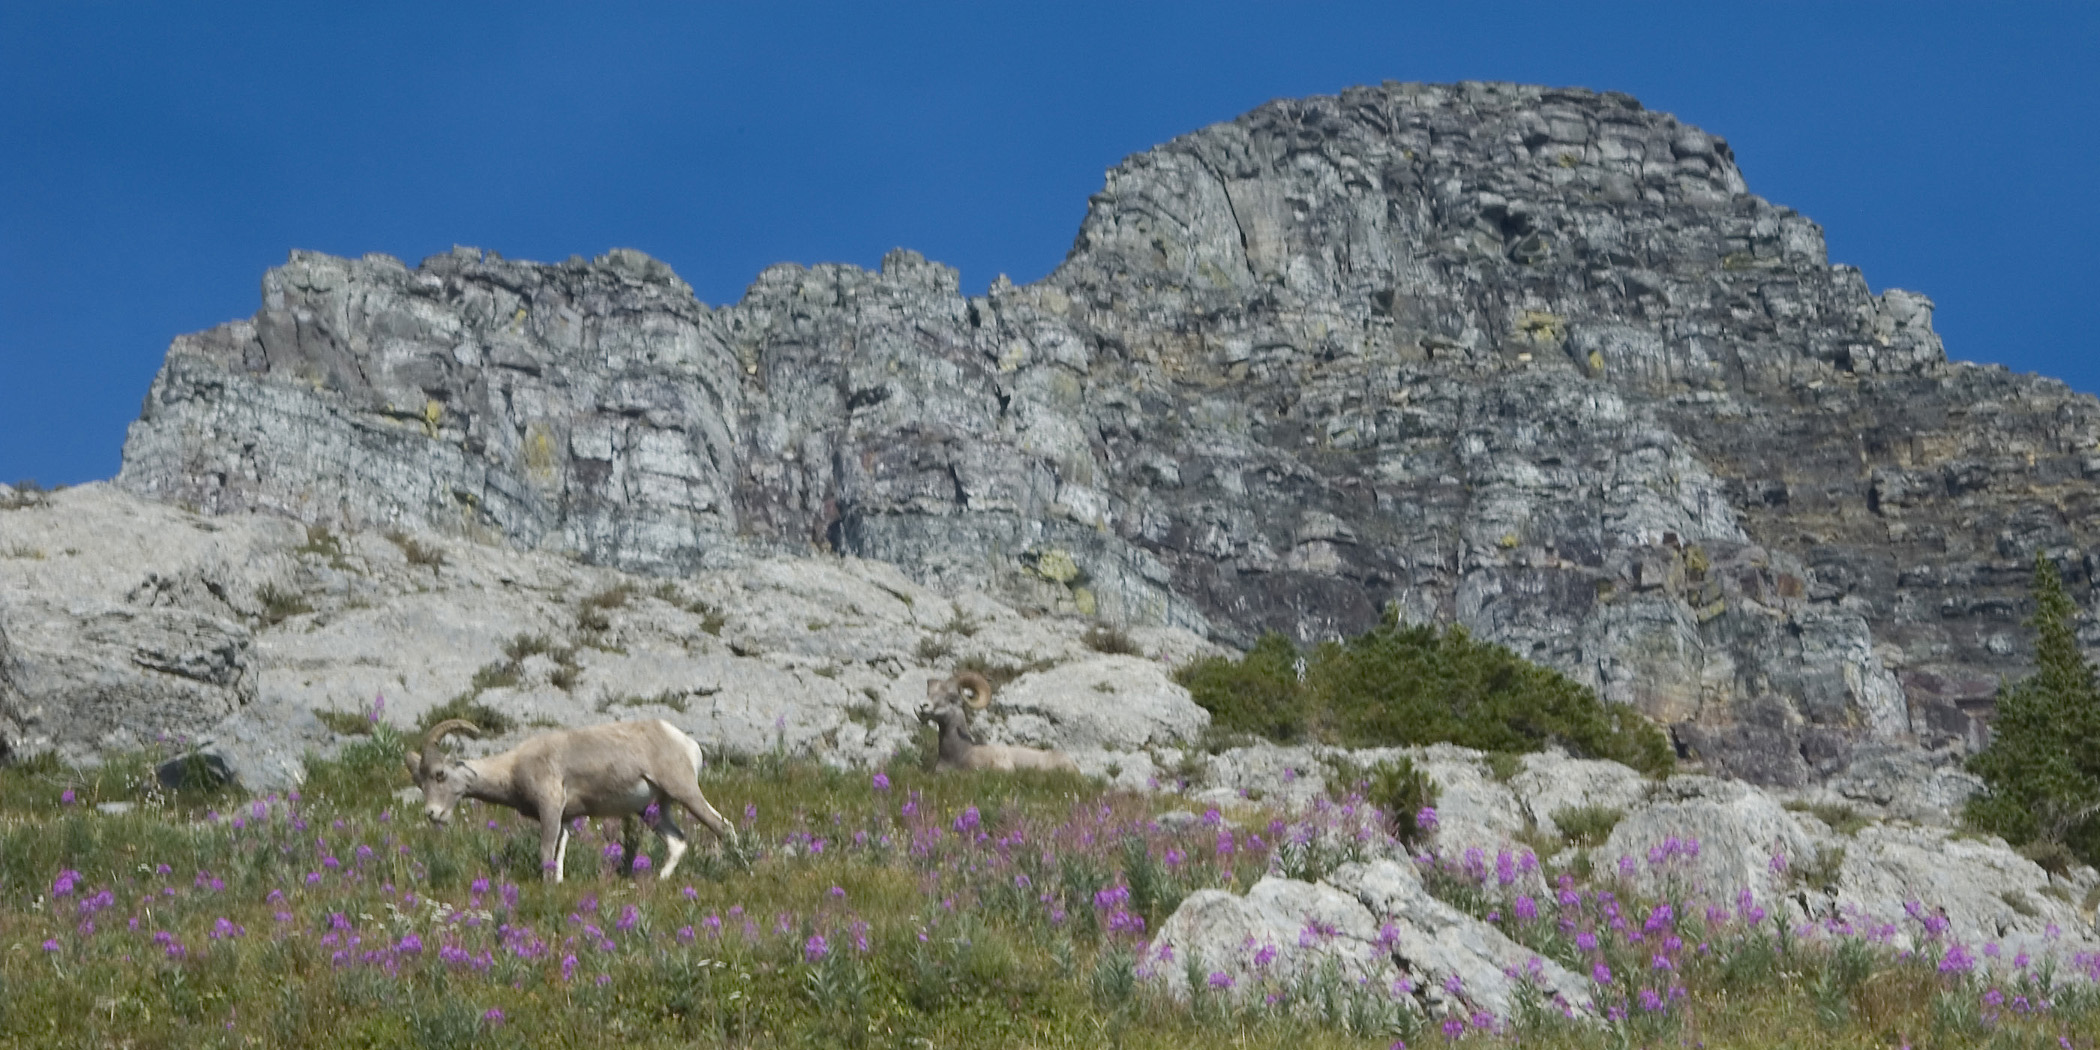 Mountain Goat and Big Horn Sheep